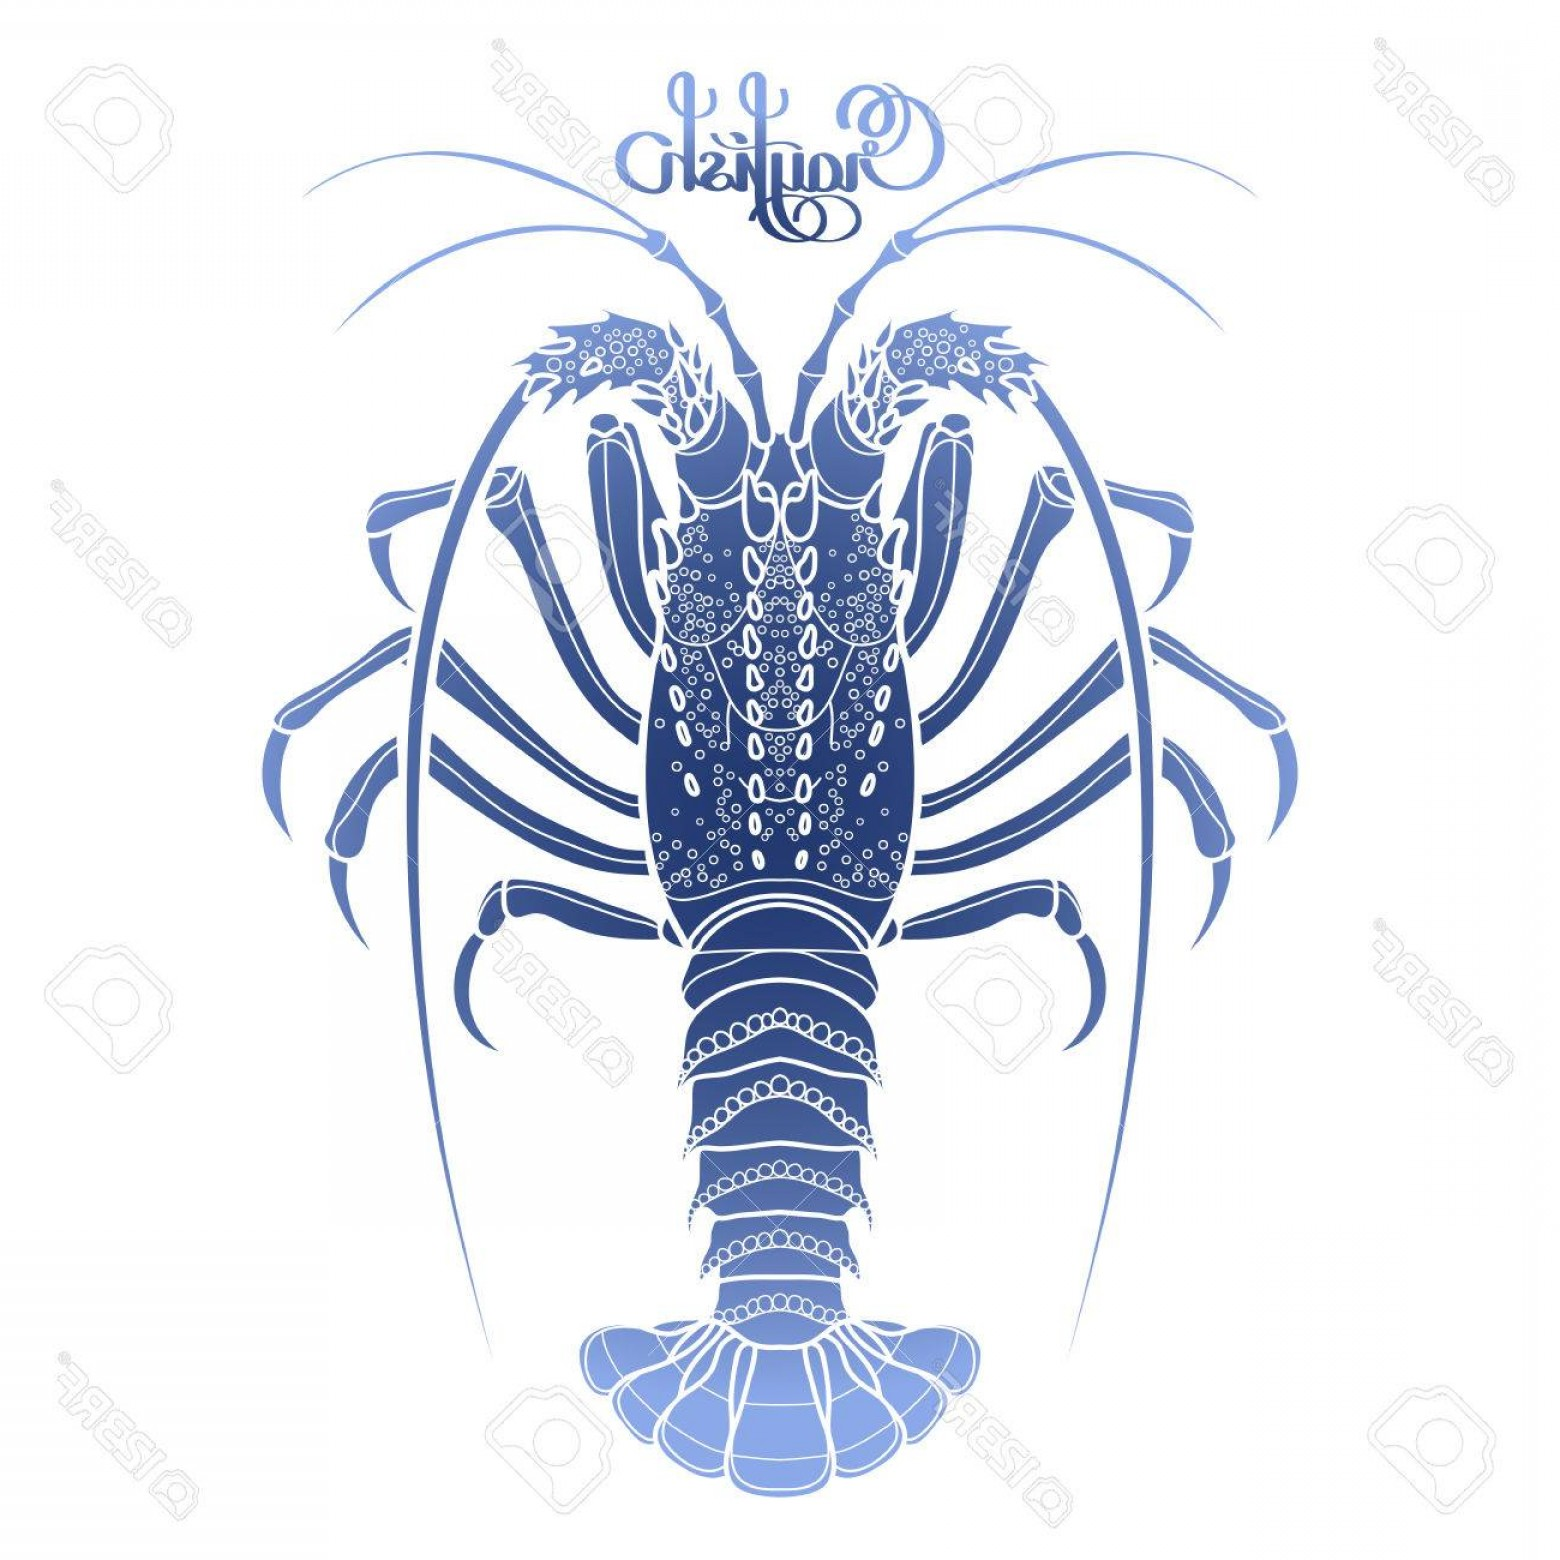 Lobster Clip Art Vector: Photostock Vector Graphic Vector Crayfish Drawn In Line Art Style Spiny Or Rocky Lobster Sea And Ocean Creature In Blu